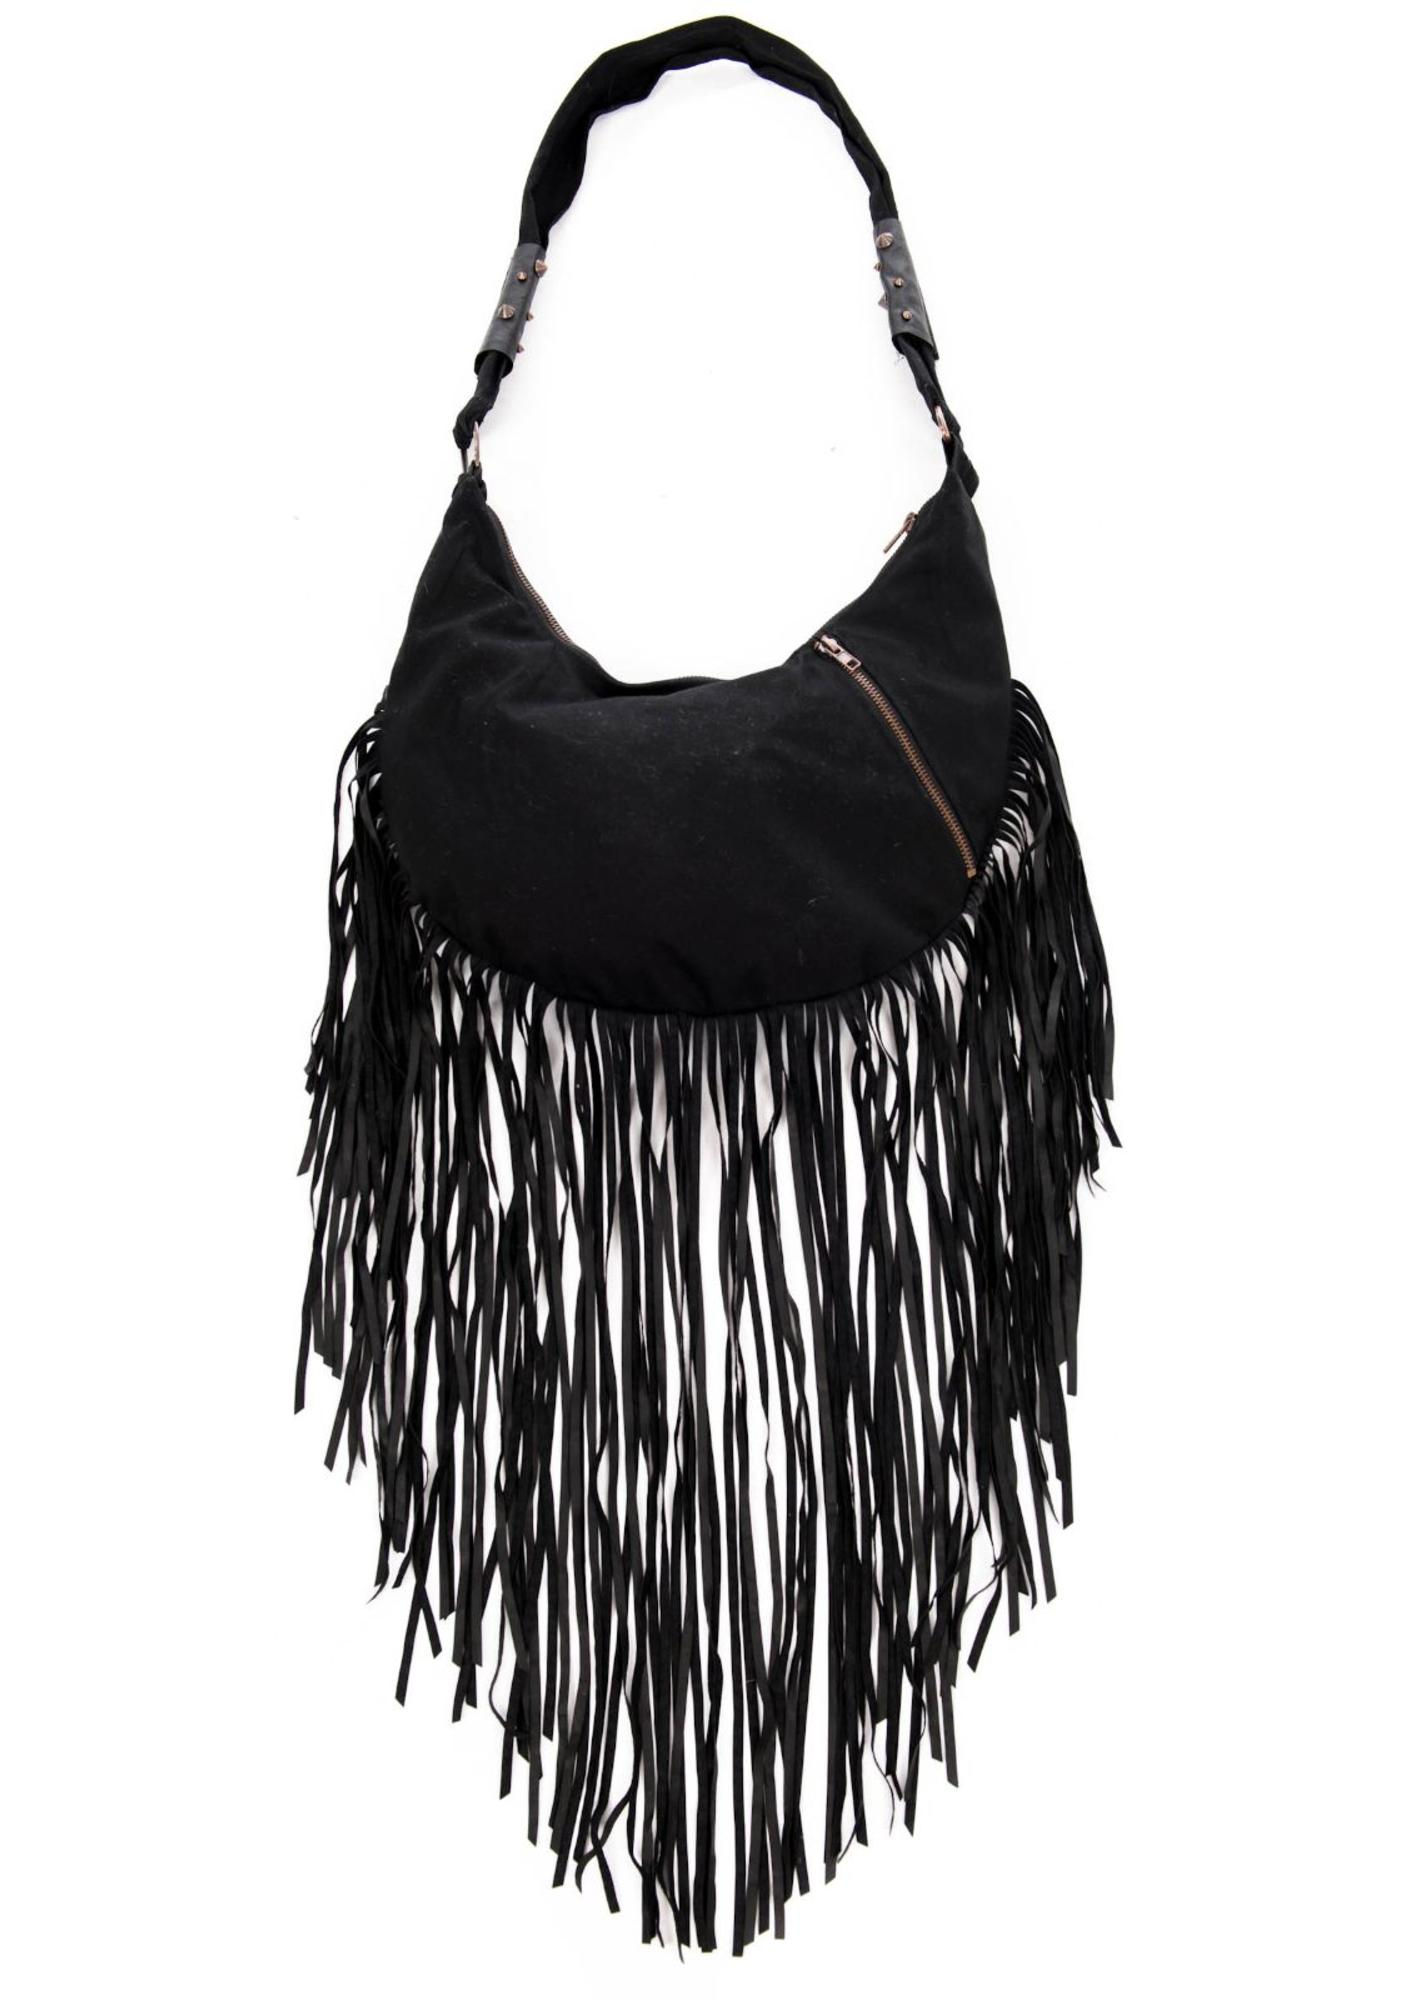 Lip Service Rust And Roll Fringe Hobo Bag